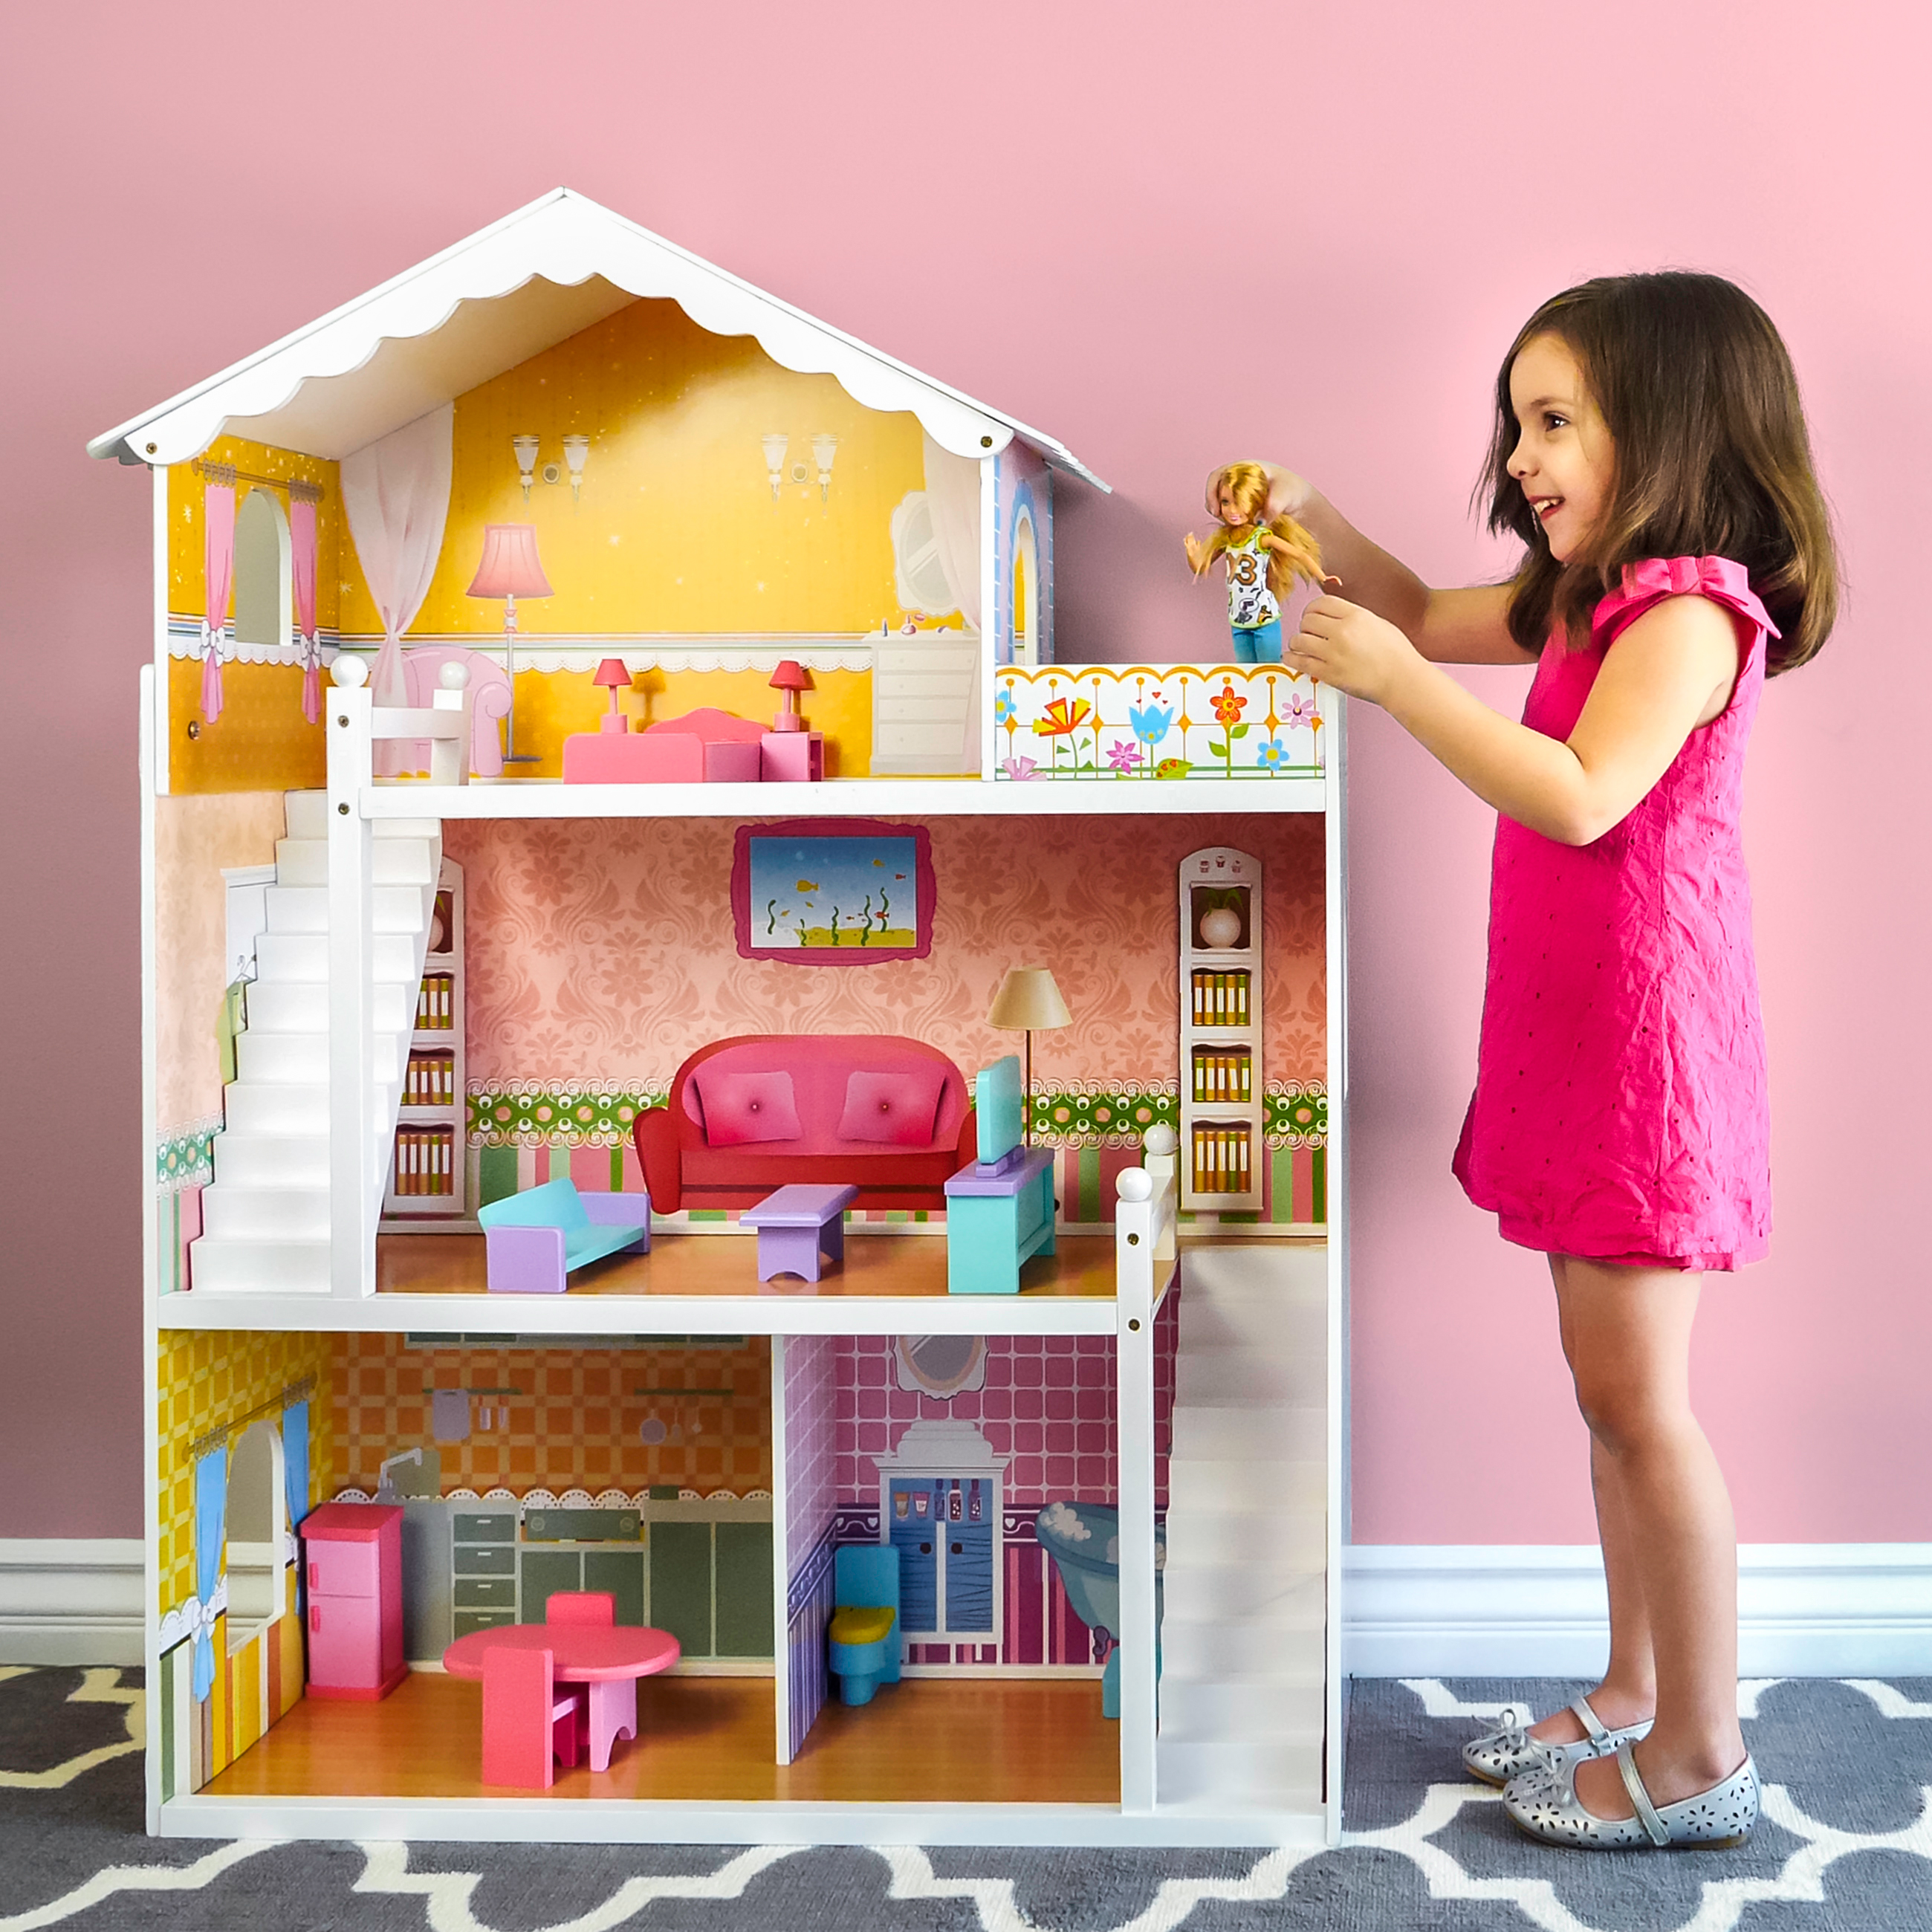 Best Choice Products Large Childrens Wooden Dollhouse Fits Barbie Doll  House Pink With 17 Pieces Of